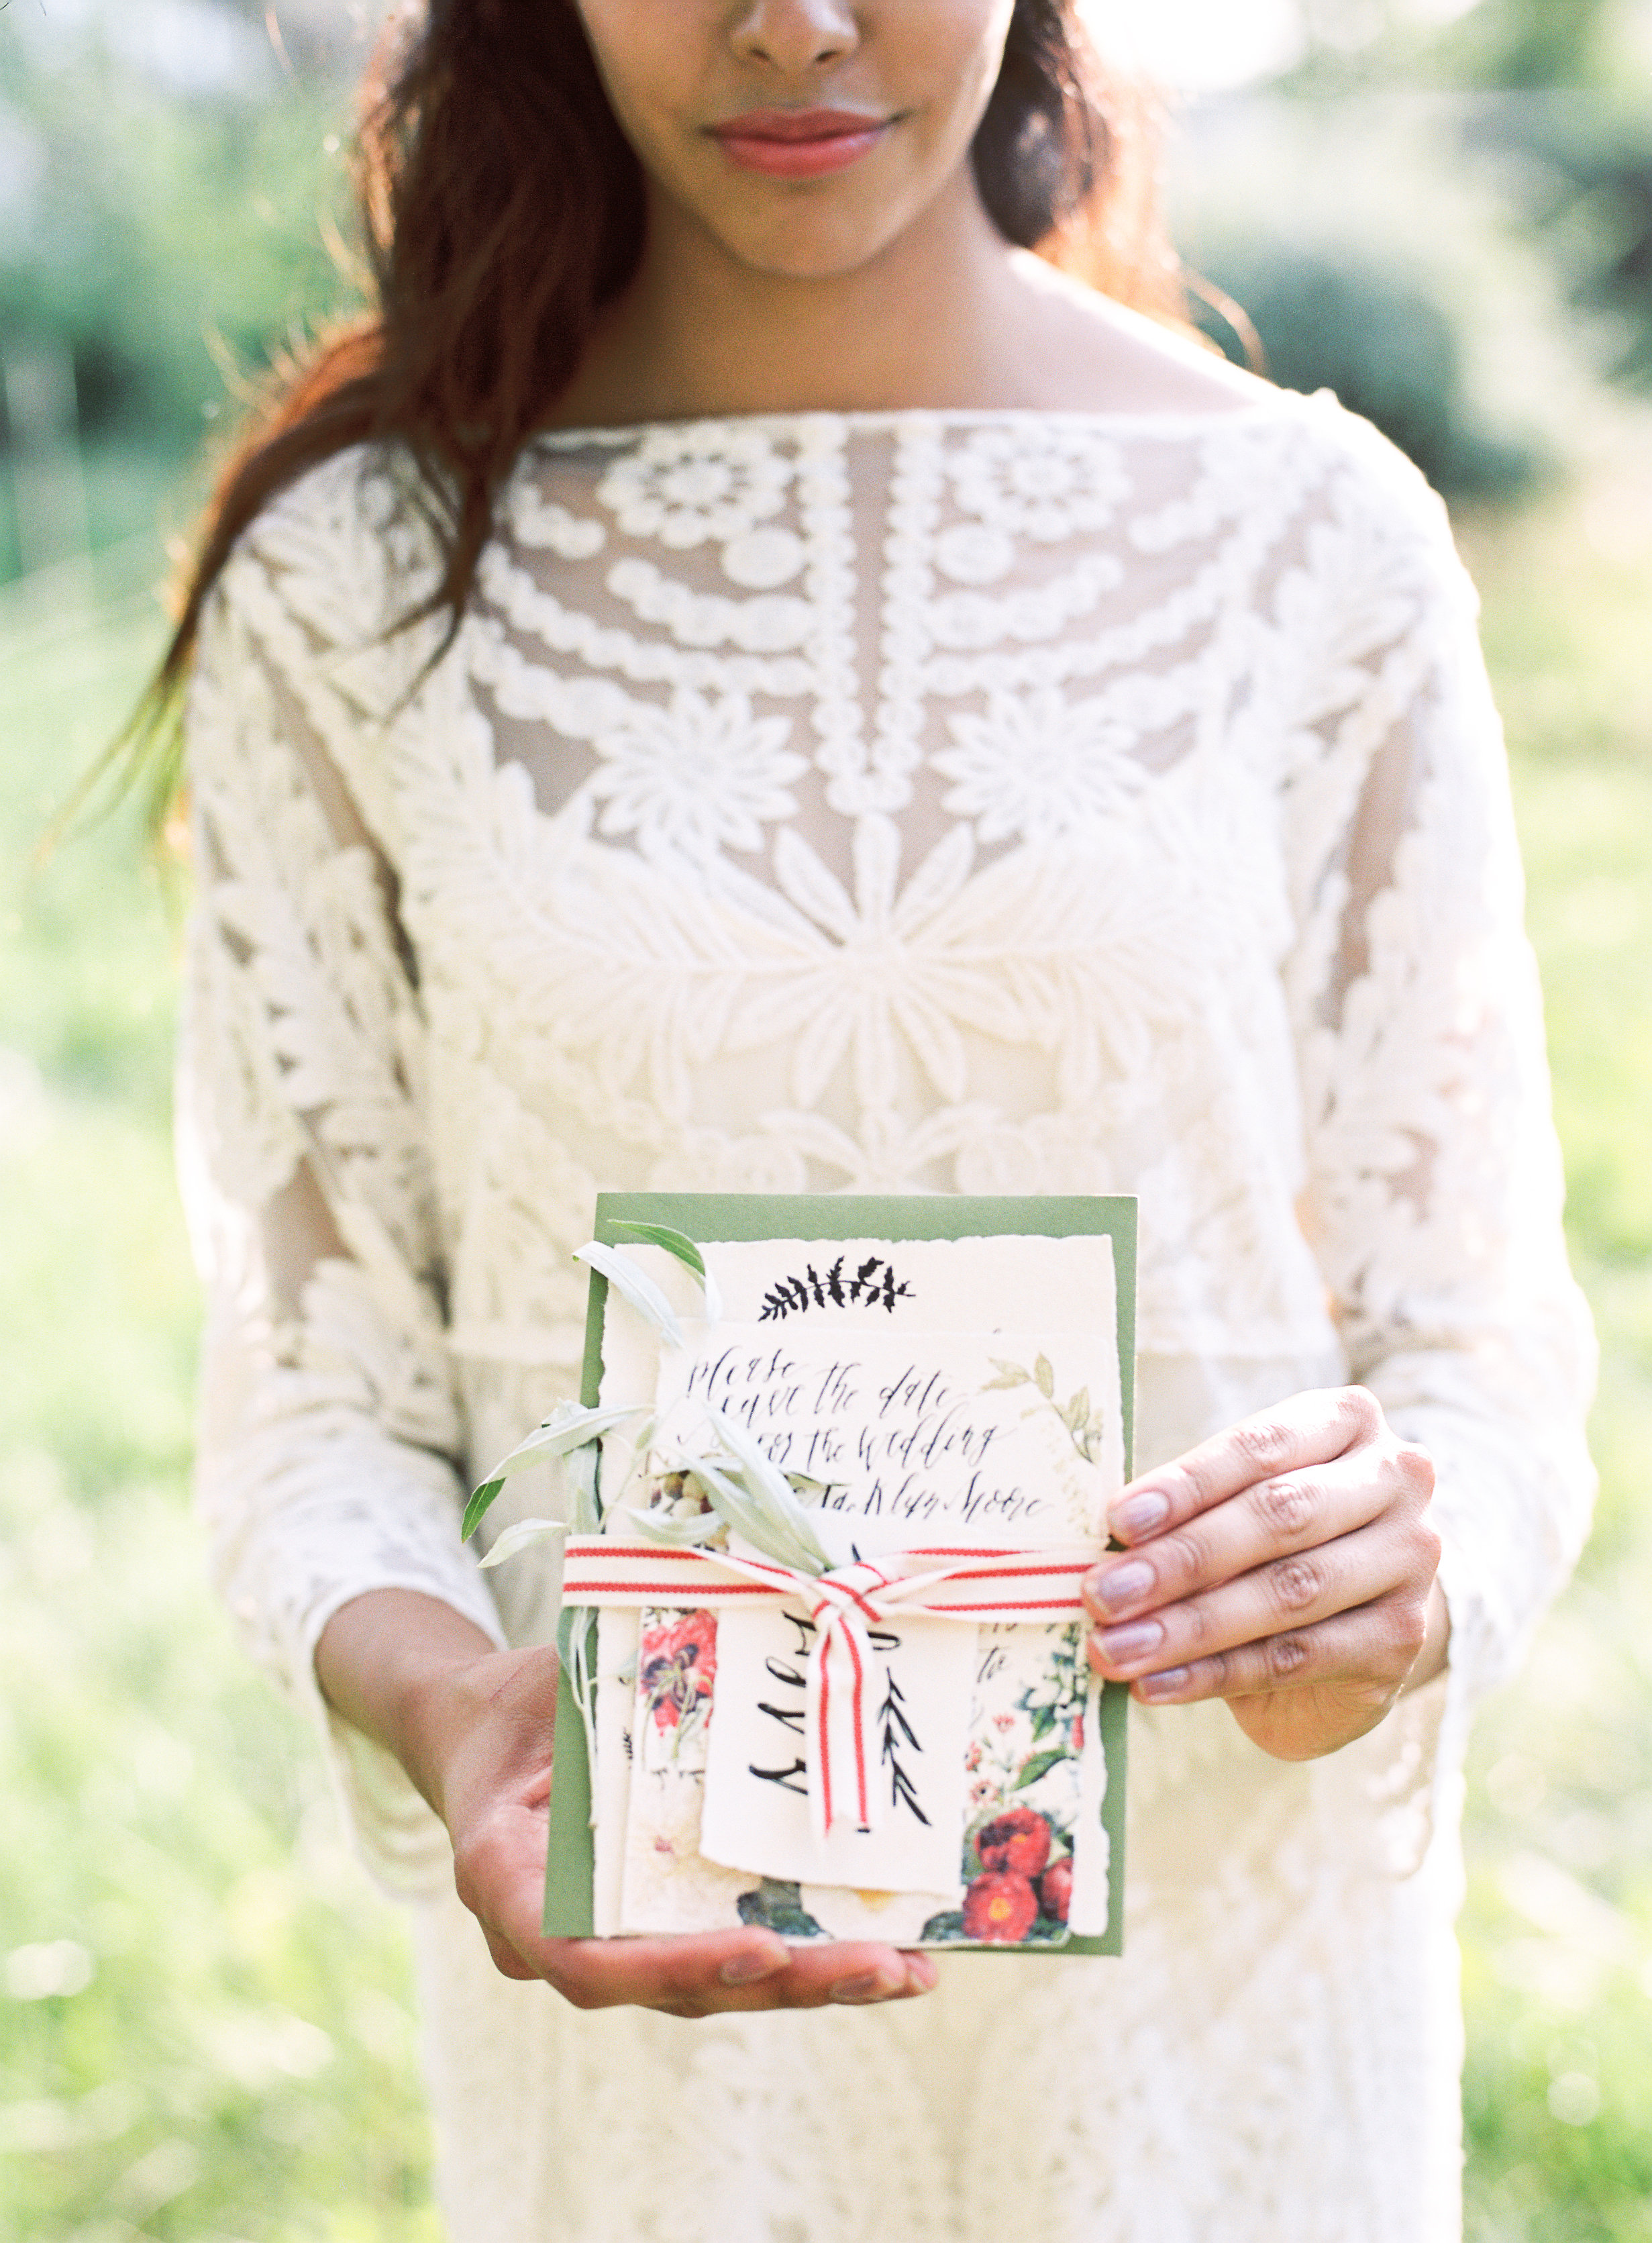 Invitation by Annie Mertlich | Photography by Loblee Photography | Styling by The Photo Fete